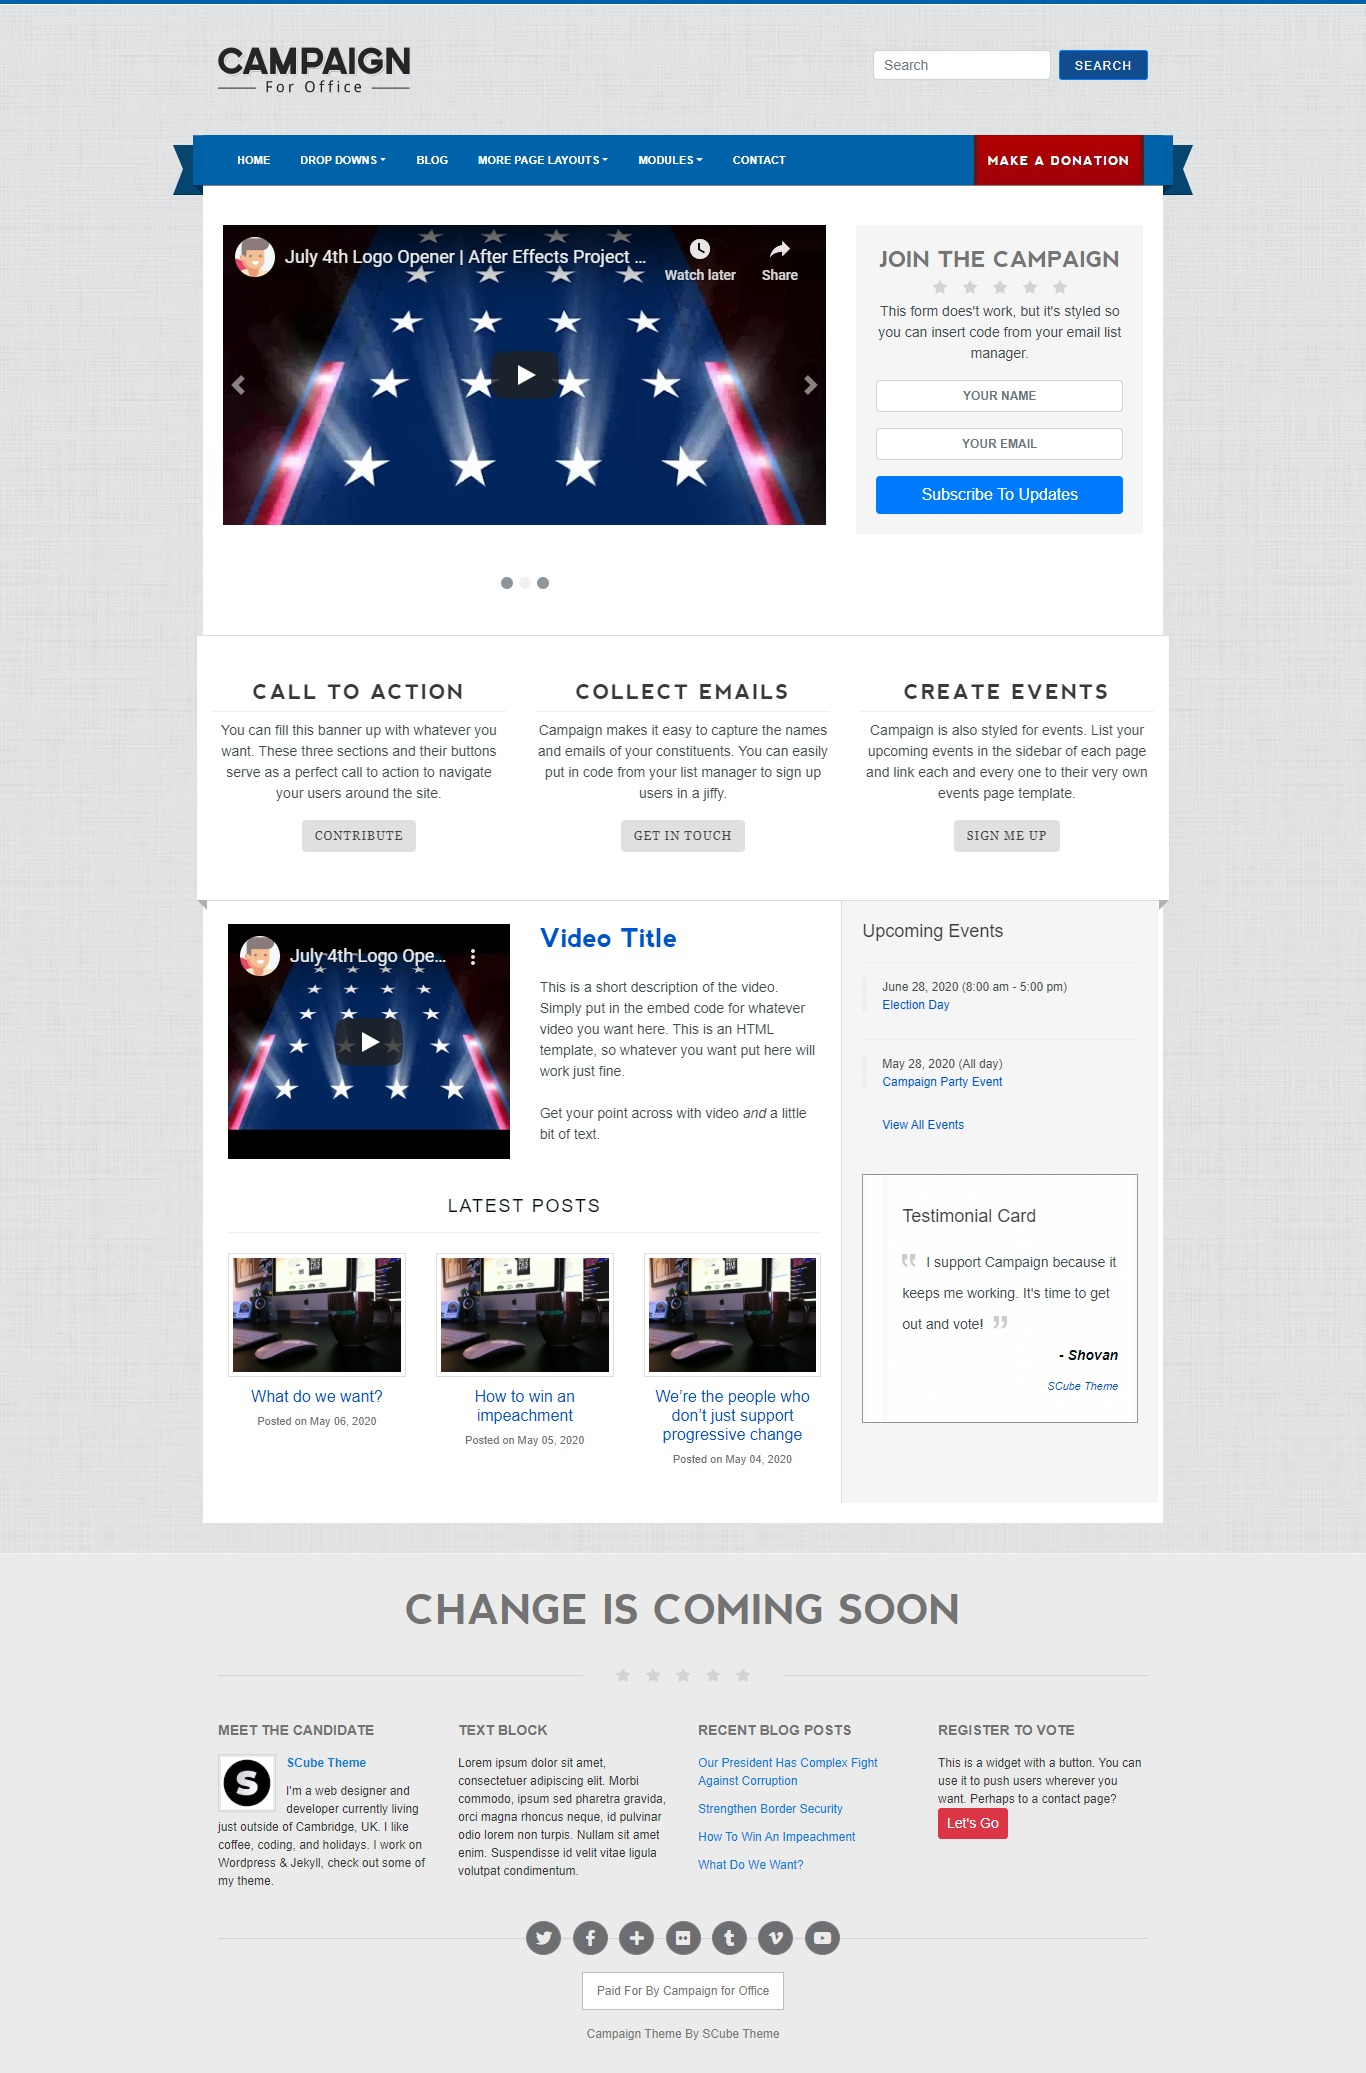 Campaign Political Jekyll Website Template